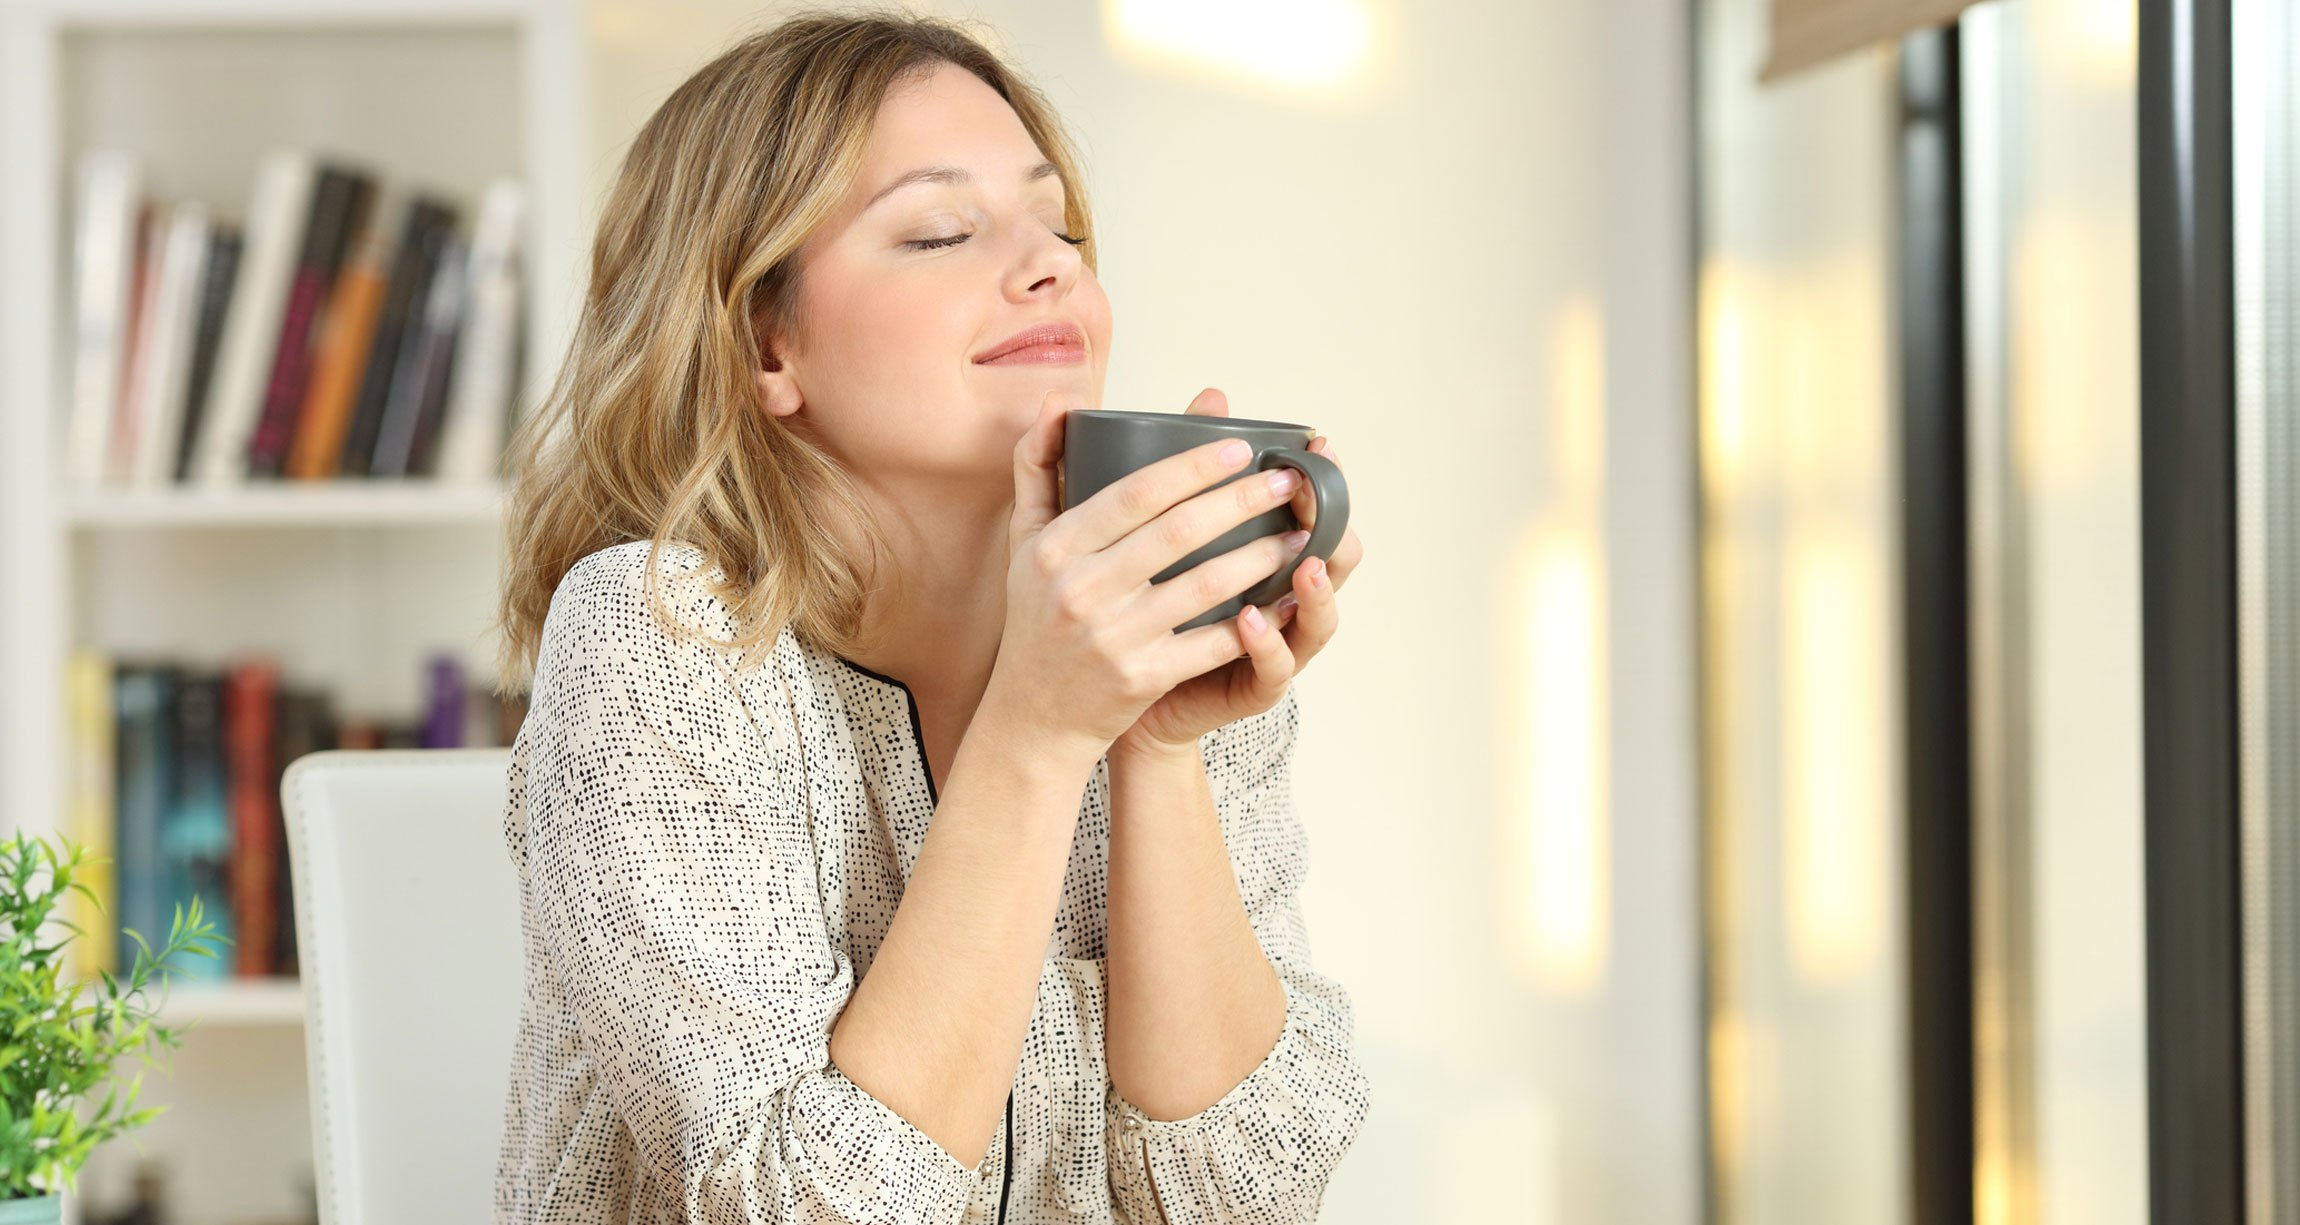 woman enjoying the smell of tea from a mug